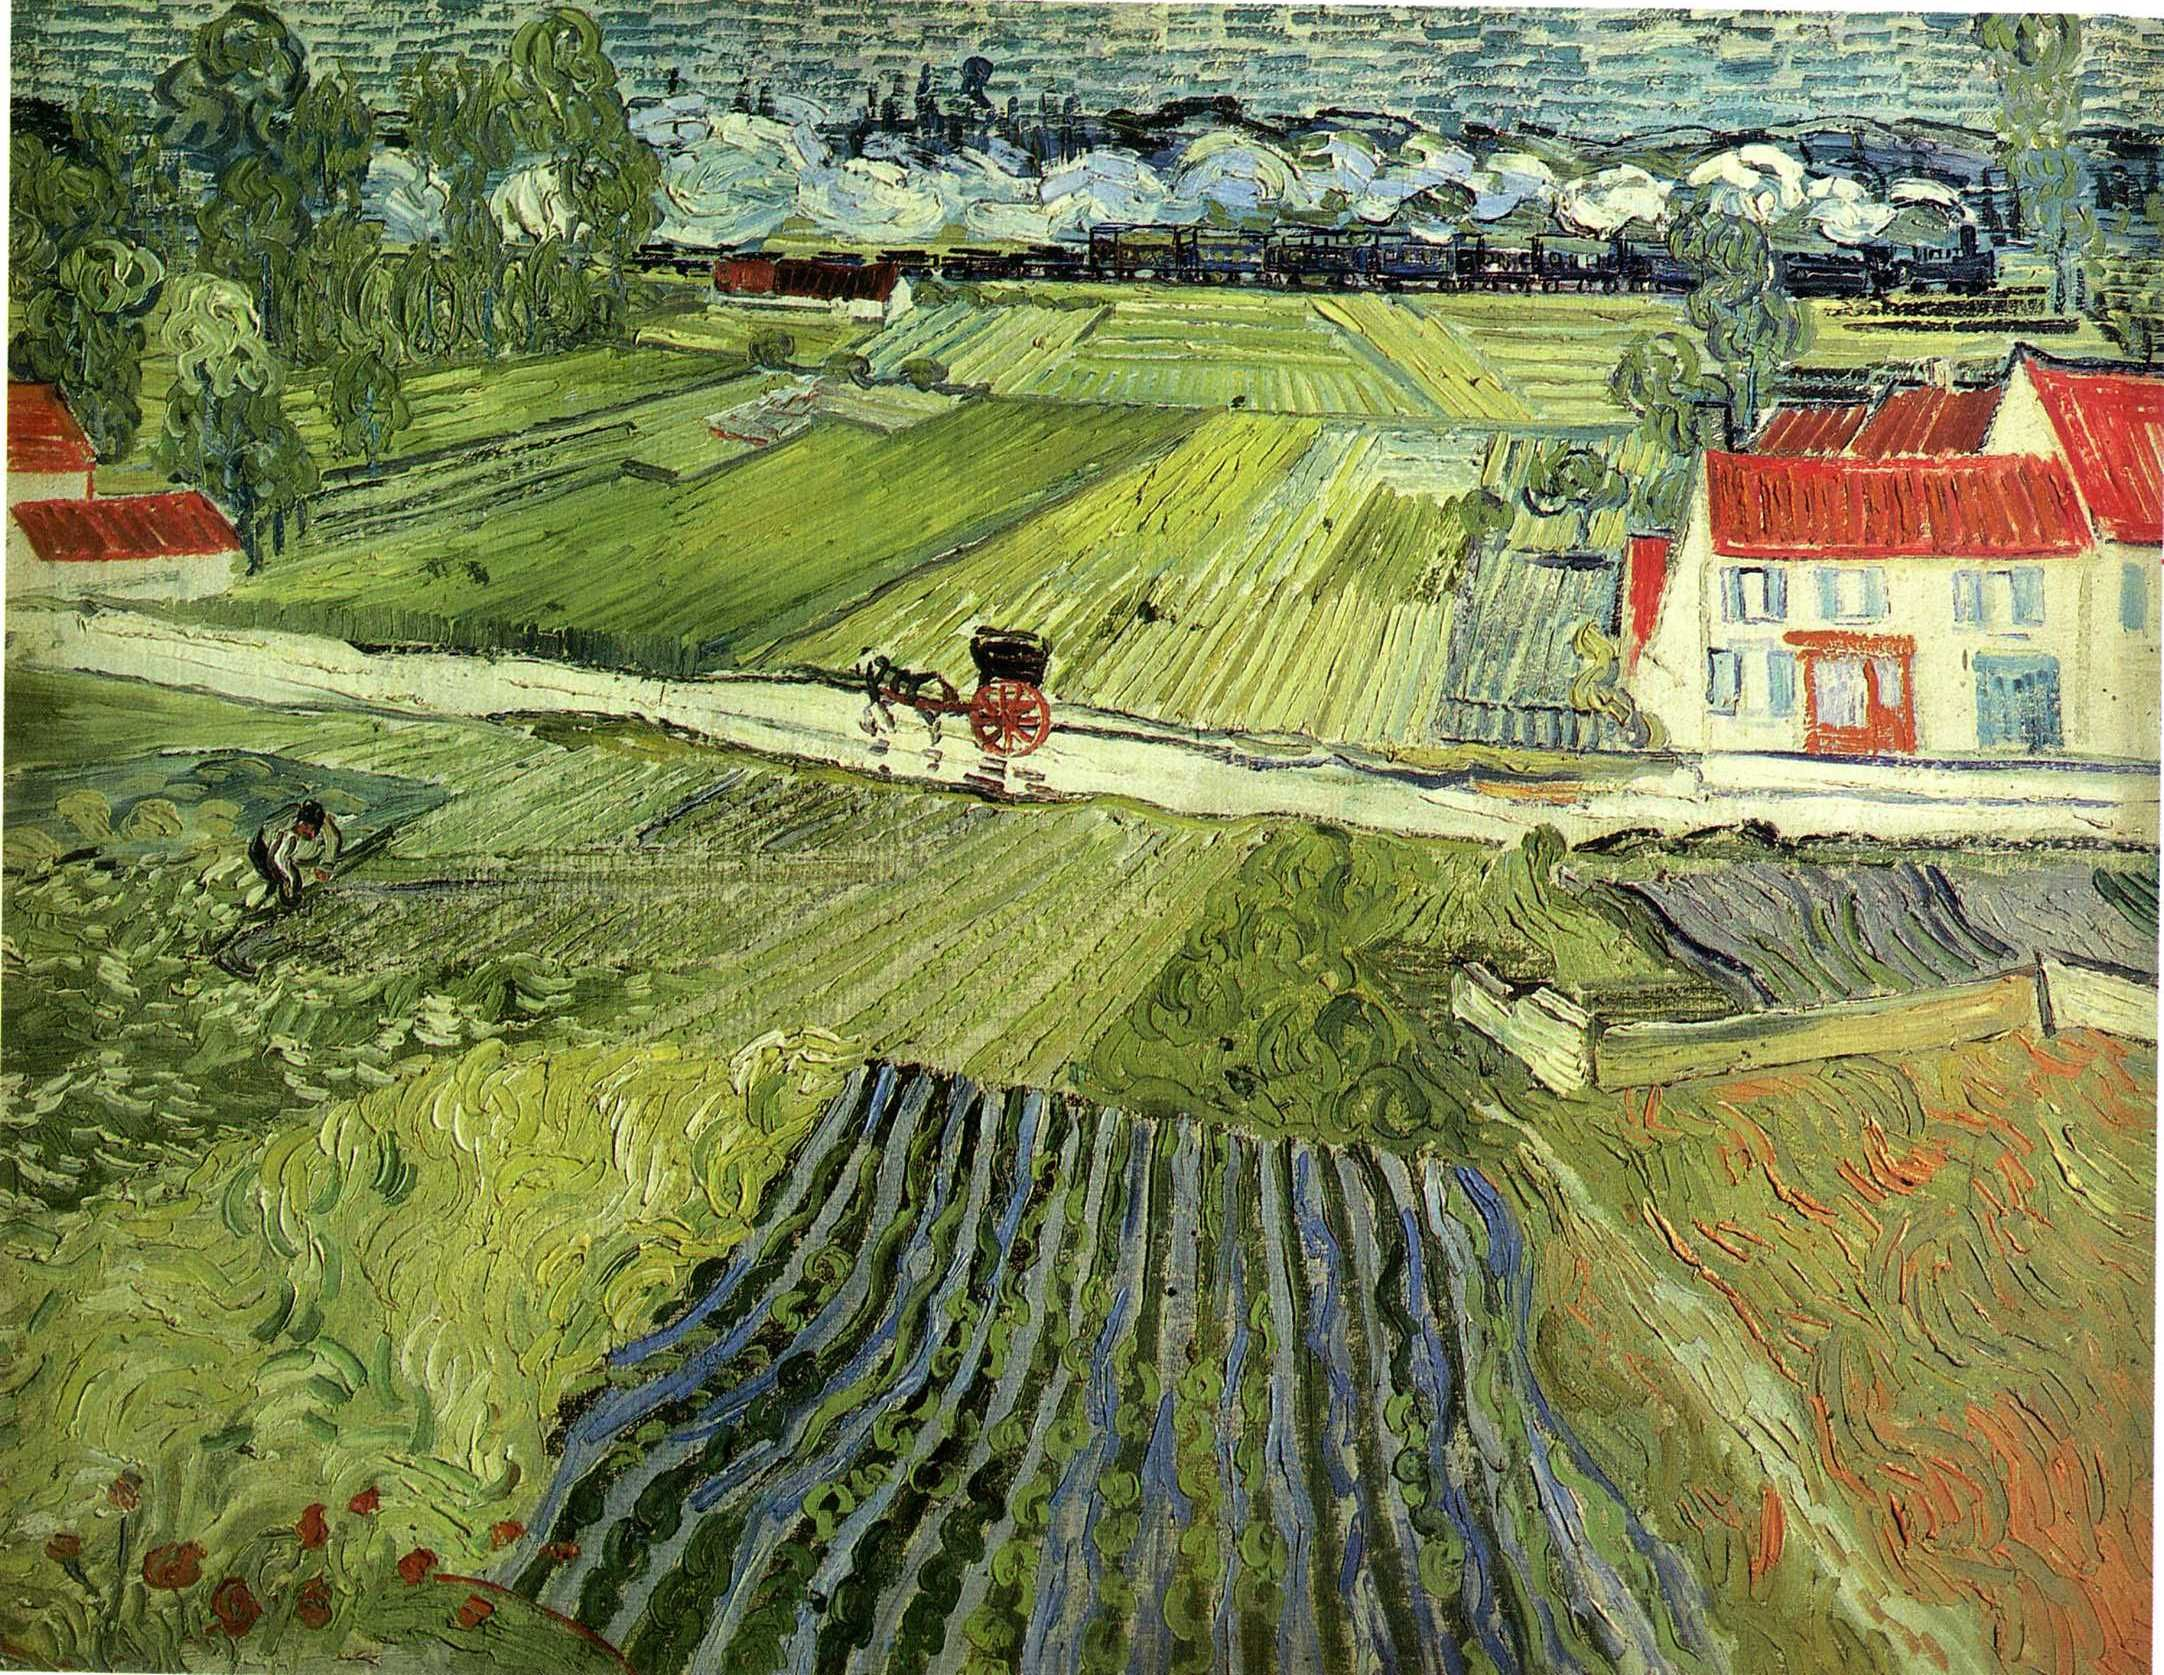 Landscape with Carriage and Train - Vincent van Gogh | Just Van ...